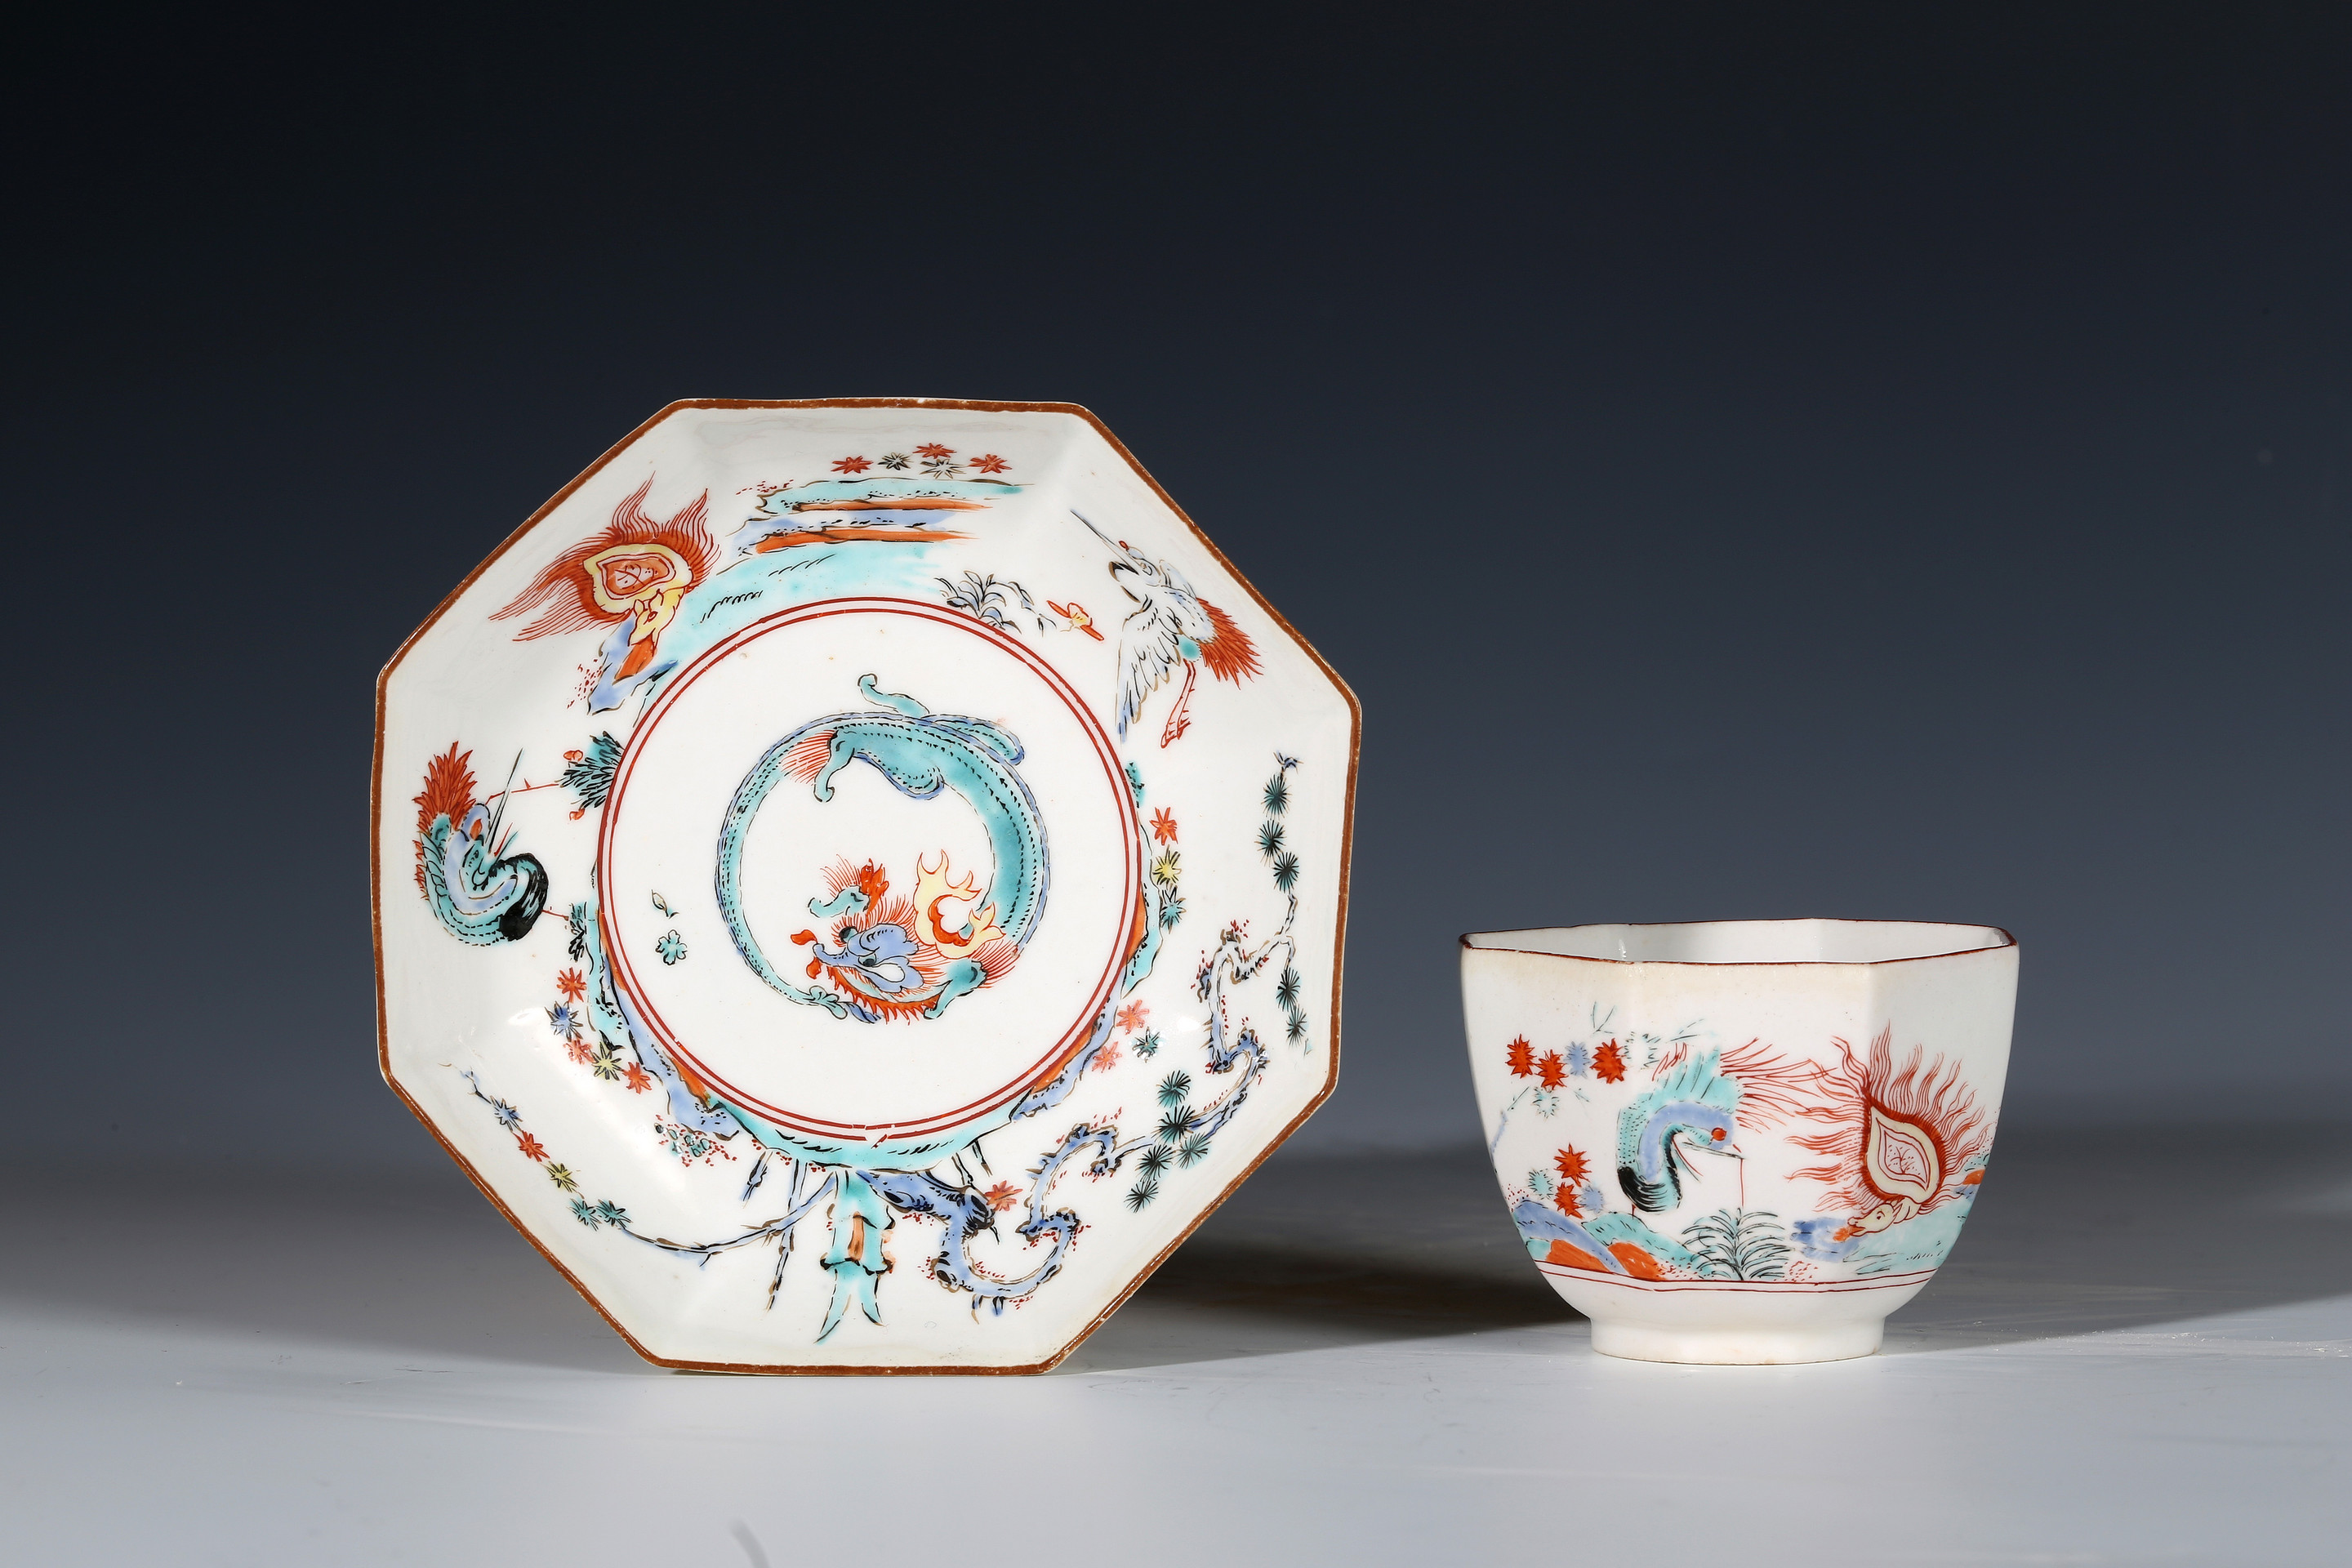 Chelsea Kakiemon Octagonal Teabowl and Saucer, With a Dragon and Flaming Tortoise